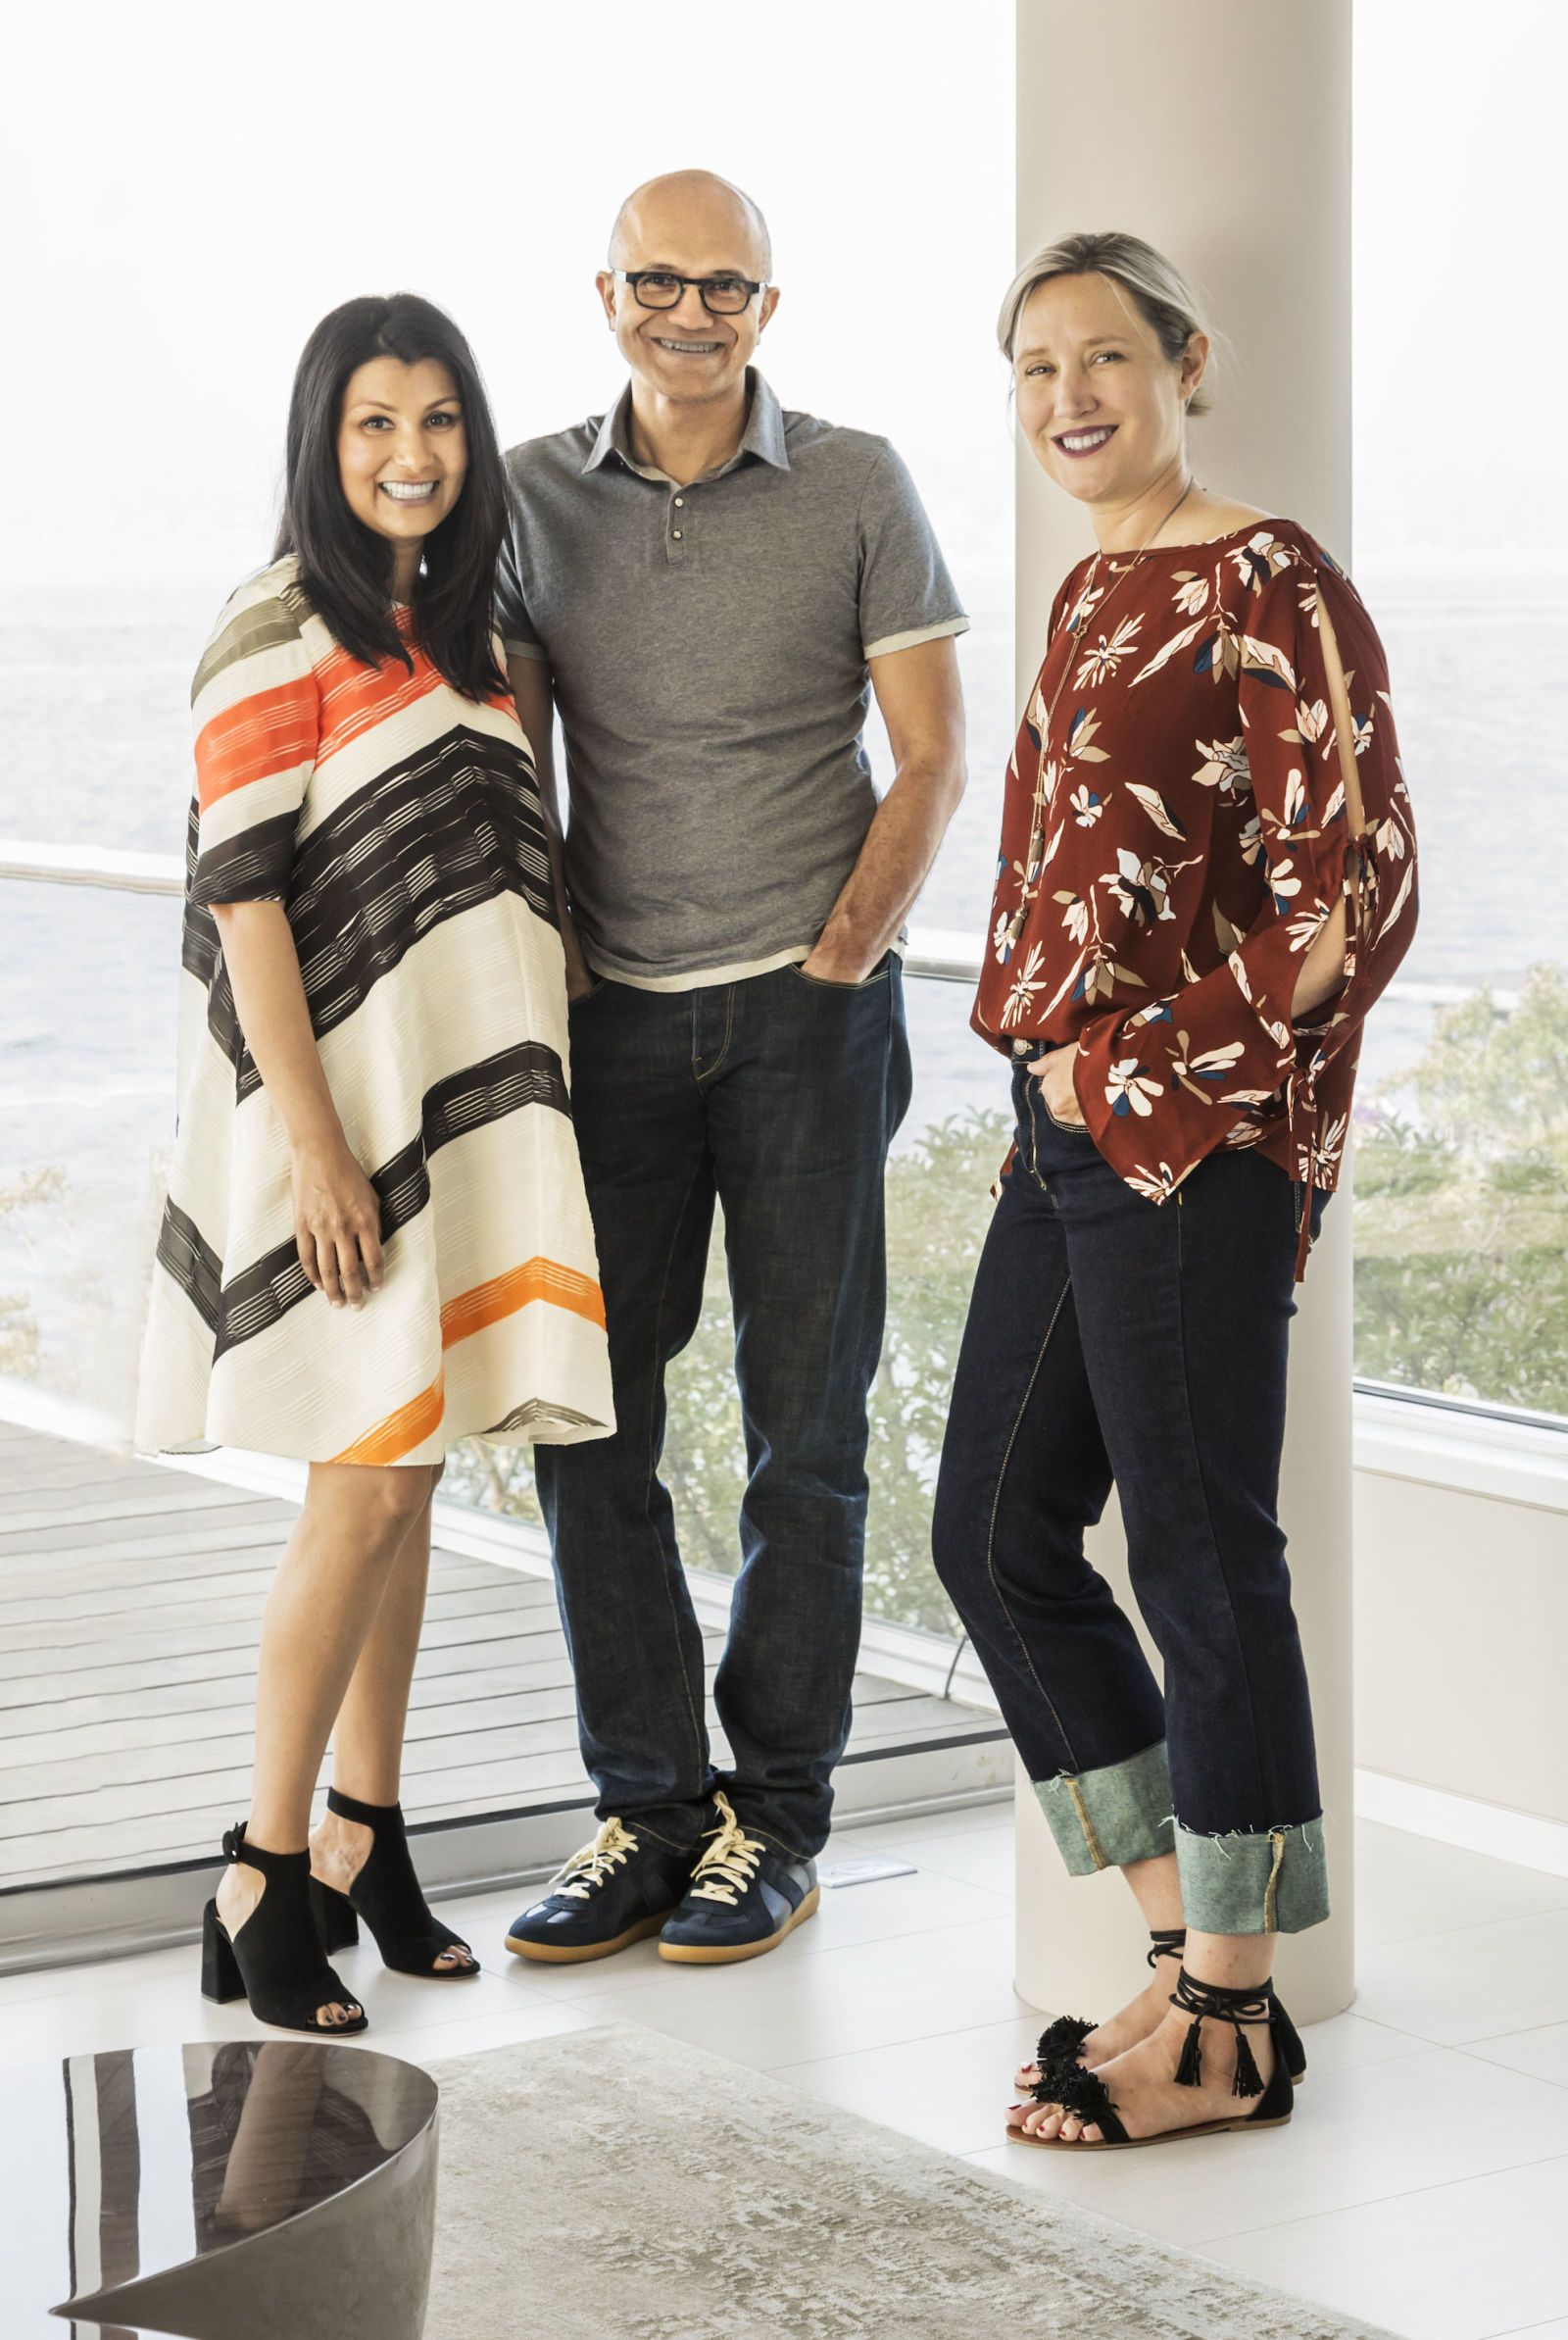 Zain Nadella: Satya And Anu Nadella Open Up About Their Family Life